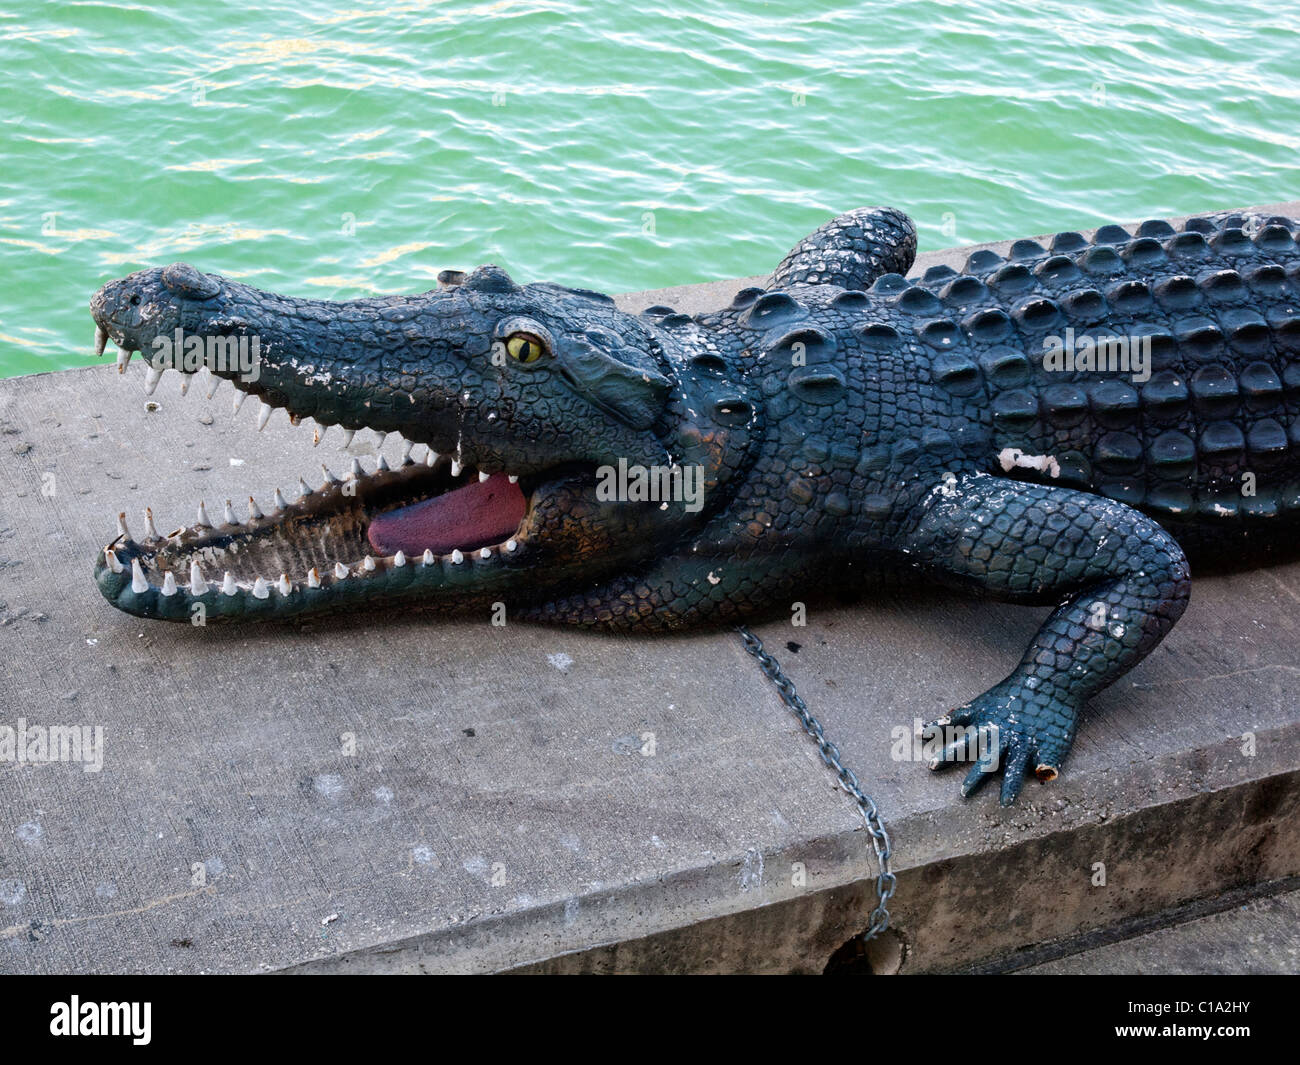 Alligator climbed onto the balcony of the second floor of a residential building 56